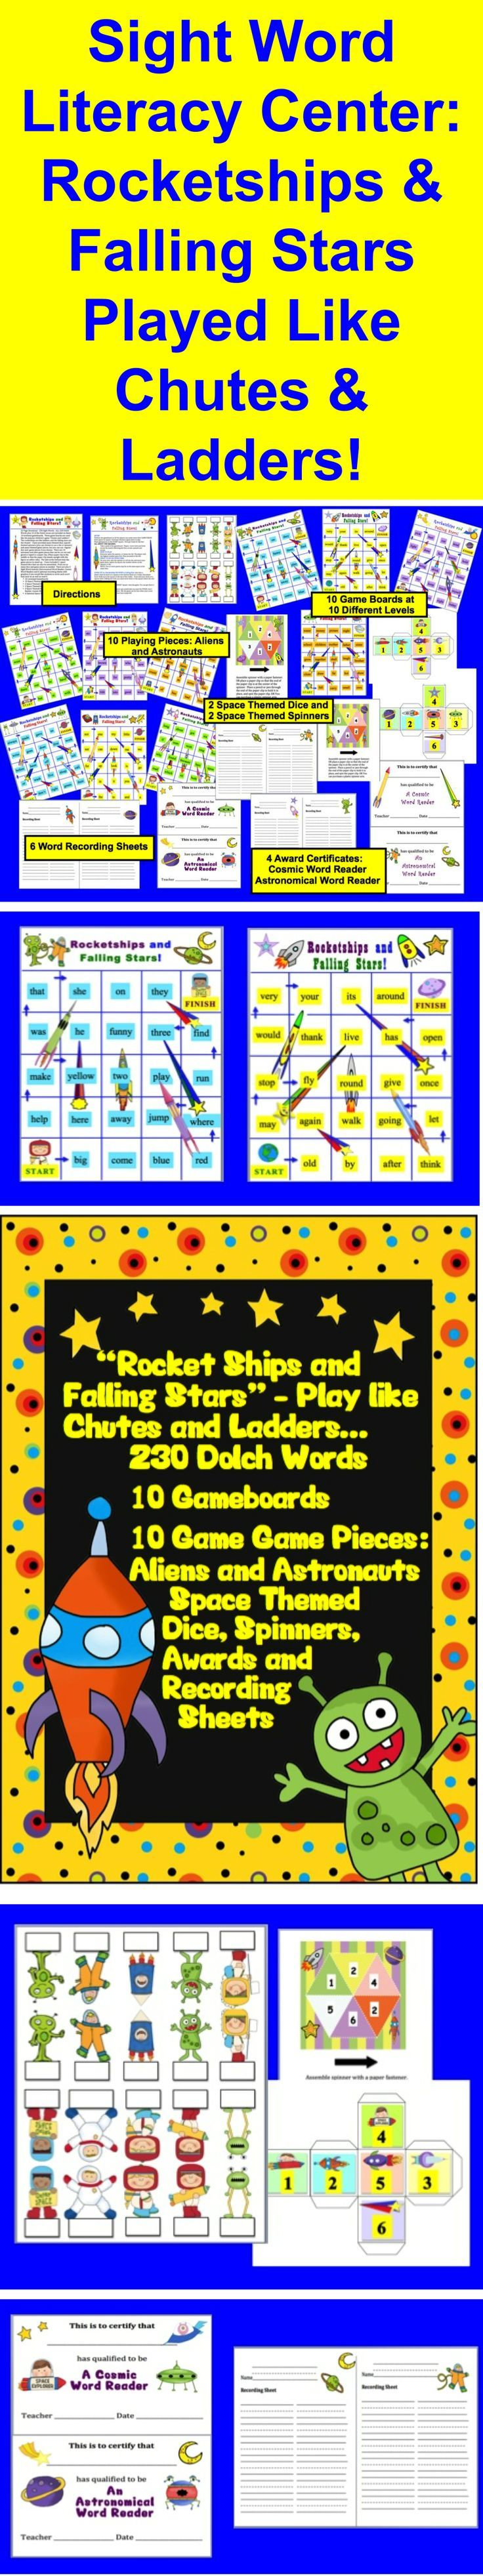 "$ Sight Words Dolch Sight Words Literacy Centers Activities - 22 Page Download - 230 Sight Words - ALL 220 Dolch Words plus 10 of the Dolch nouns are included on these 10 levelized gameboards. These game boards are used like the popular children's game ""Chutes and Ladders"". The rocket ships are like ladders, and the falling stars are the chutes! I have provided space themed dice, spaced themed spinners and space themed game pieces, but you can use regular dice and game pieces if you choose."